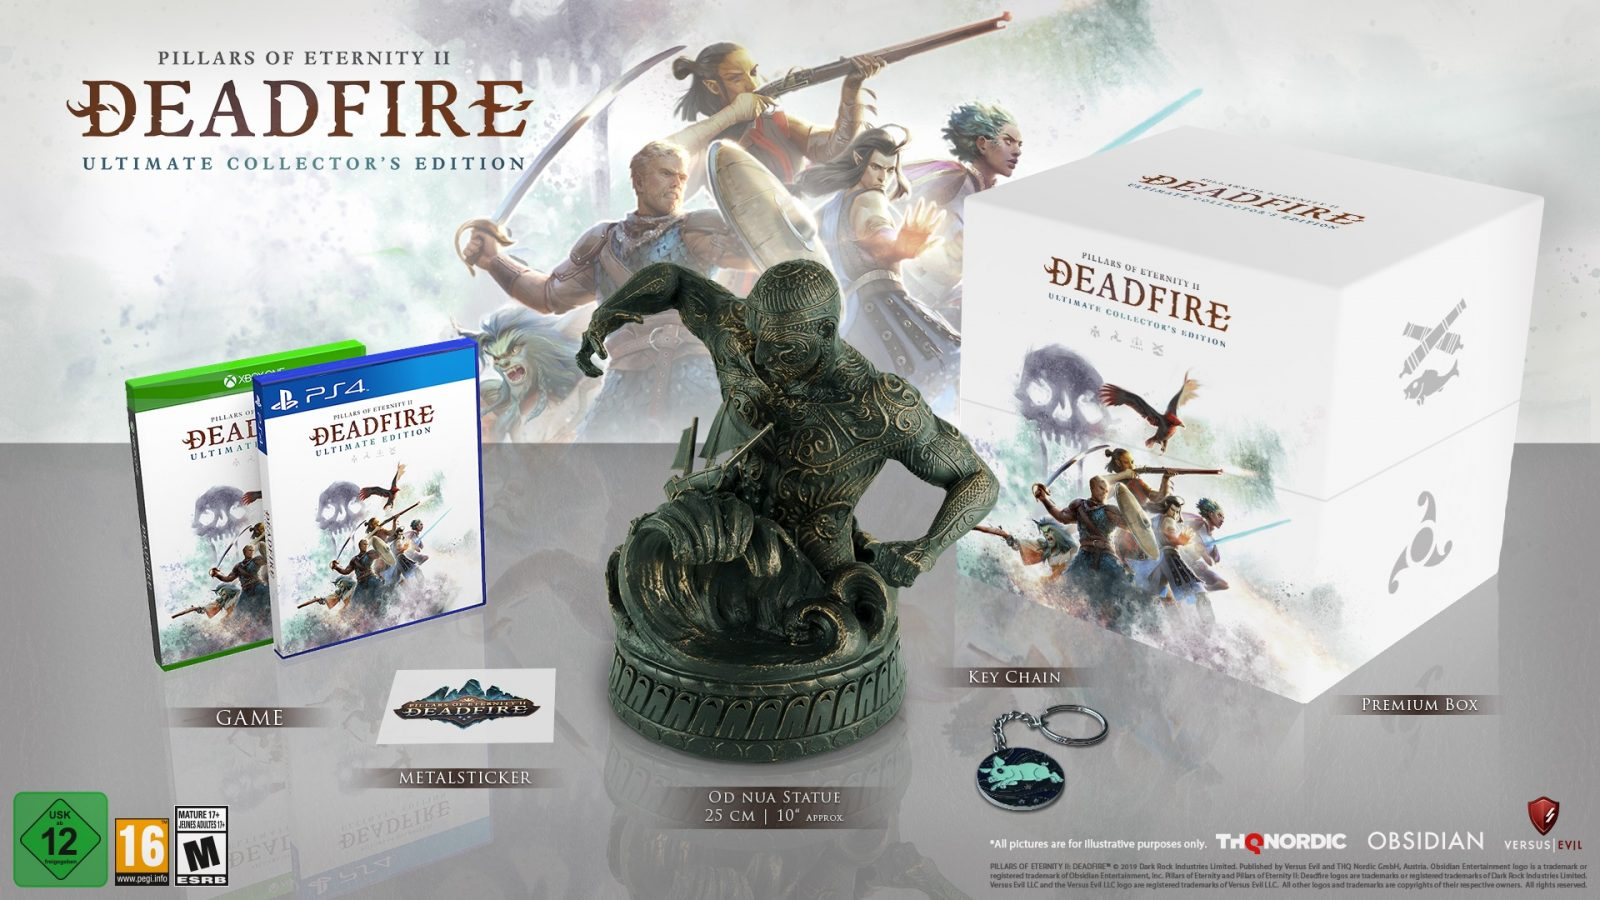 Pillars of Eternity II: Deadfire – Ultimate Edition Launches for PS4 and Xbox One on January 28